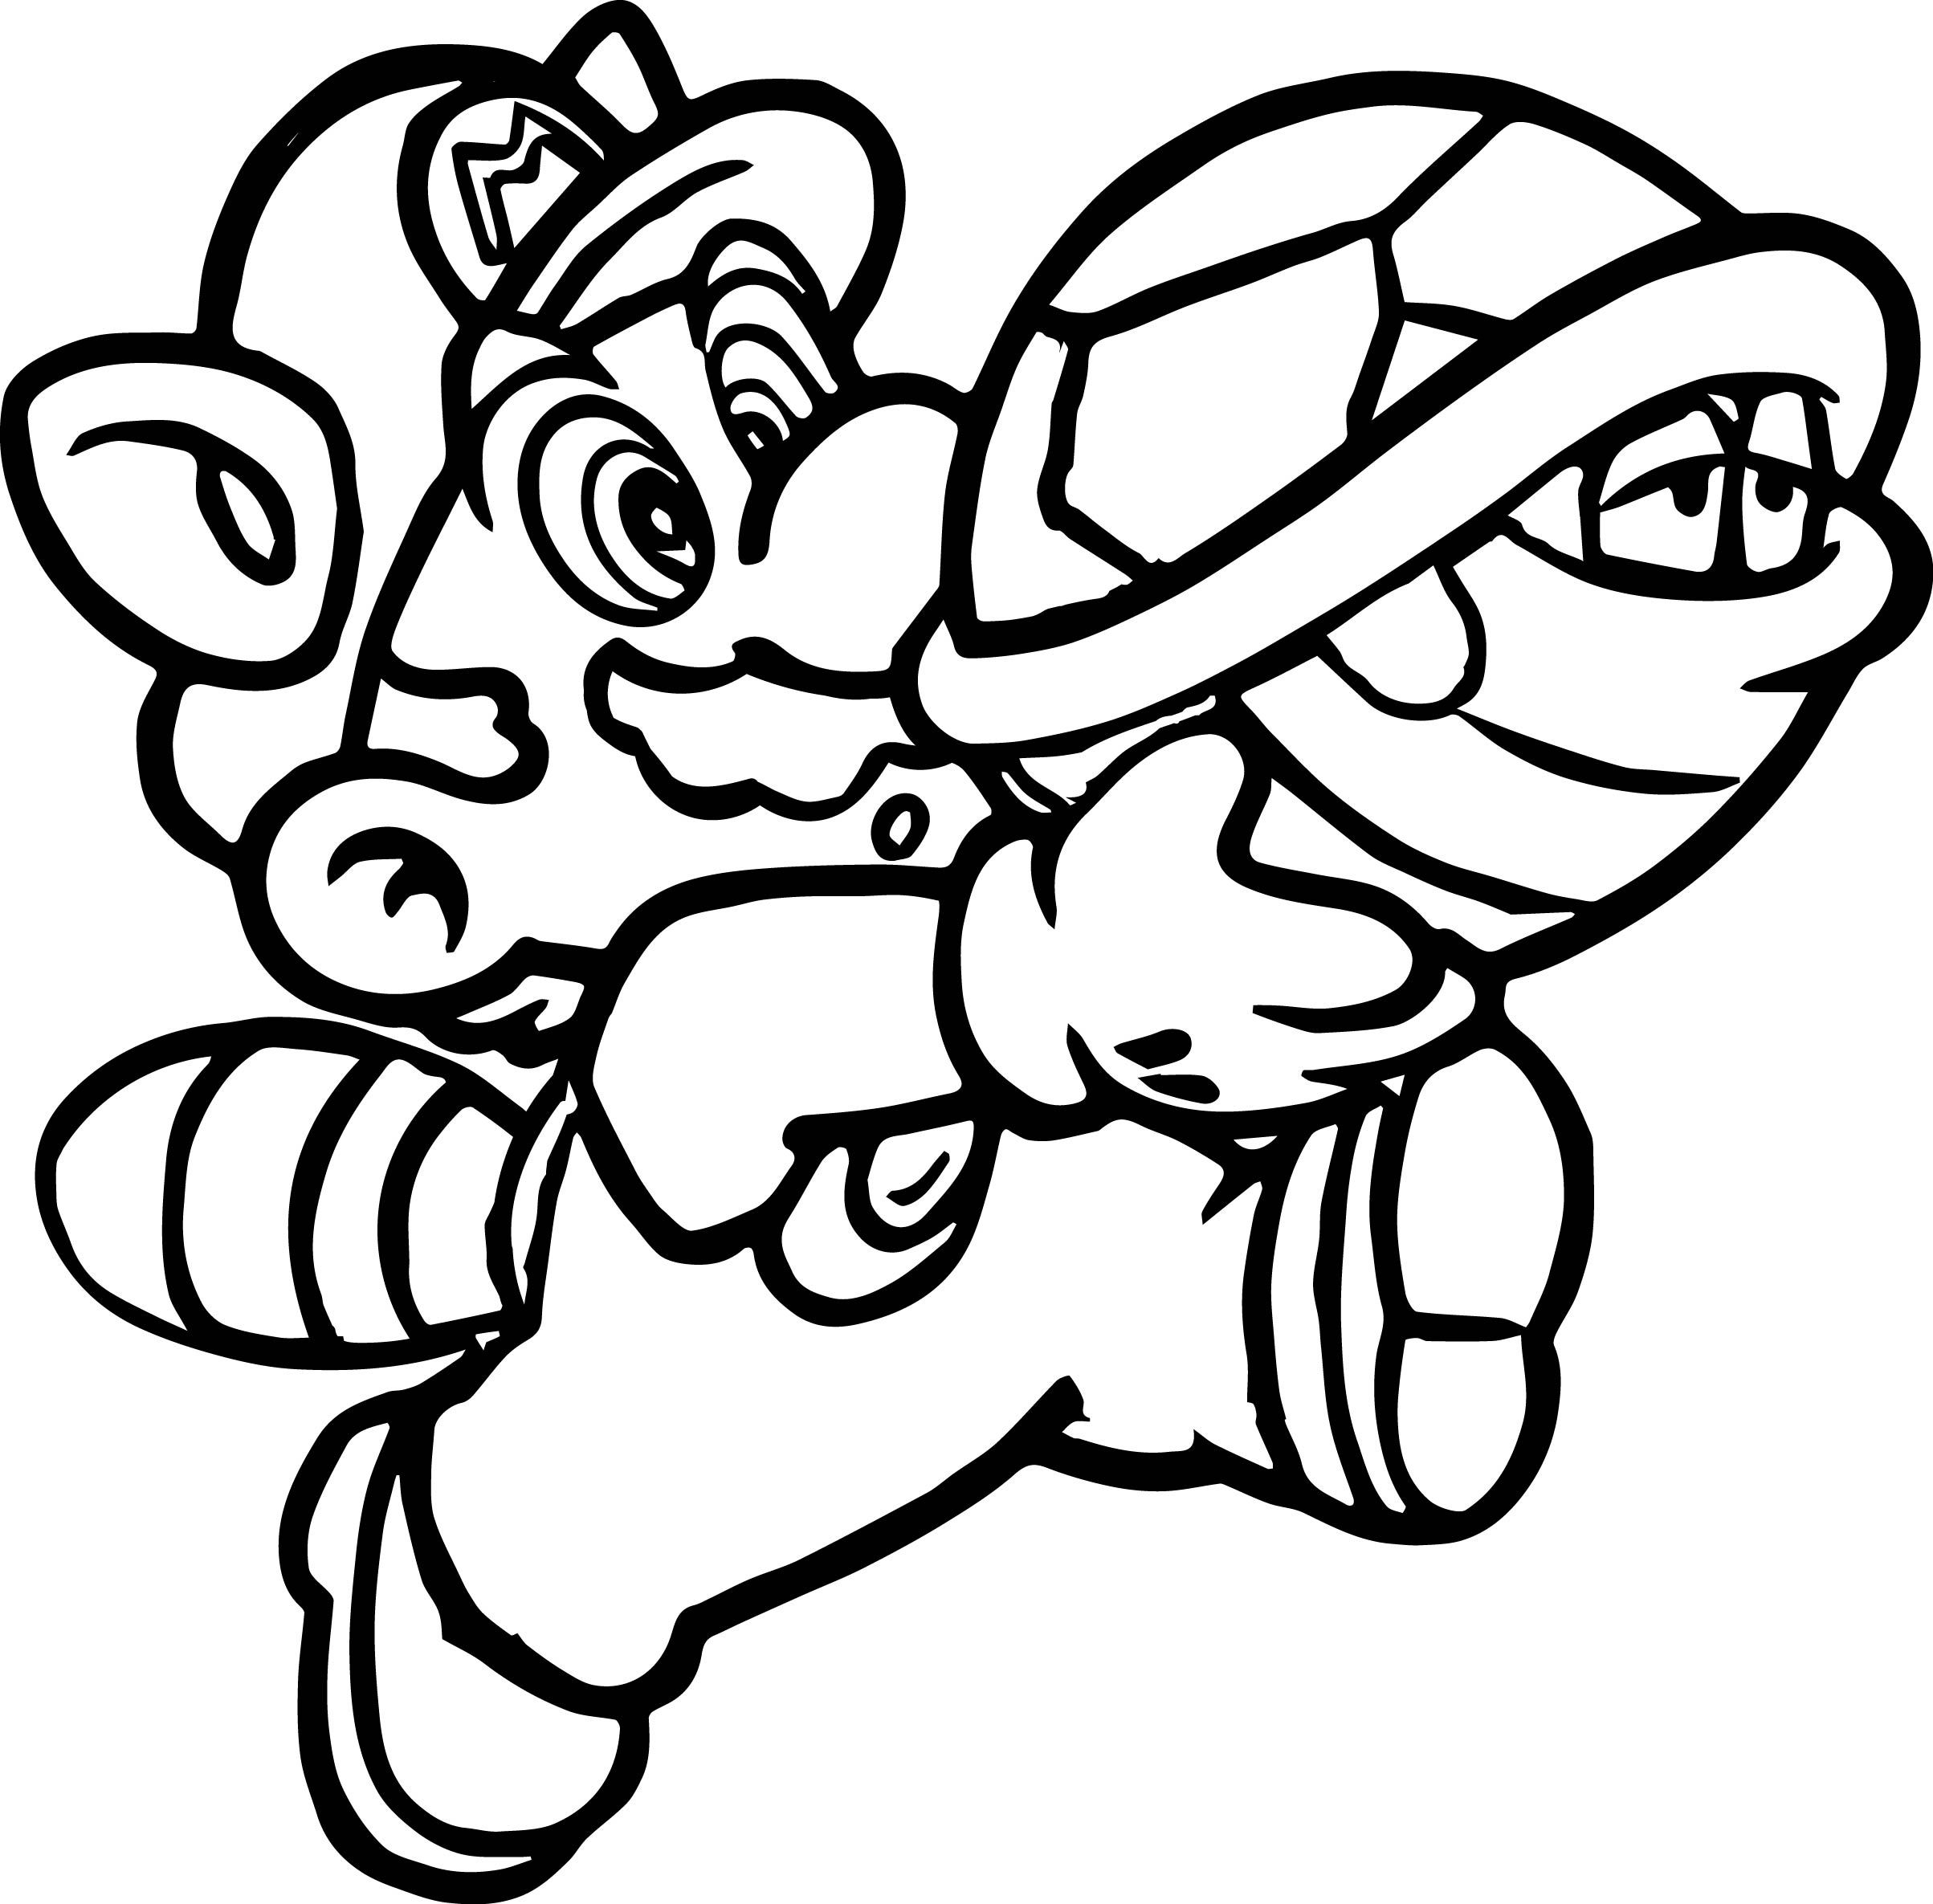 Cool Super Mario Going With Turtle And Catch Him Coloring Page Super Mario Coloring Pages Mario Coloring Pages Coloring Pages